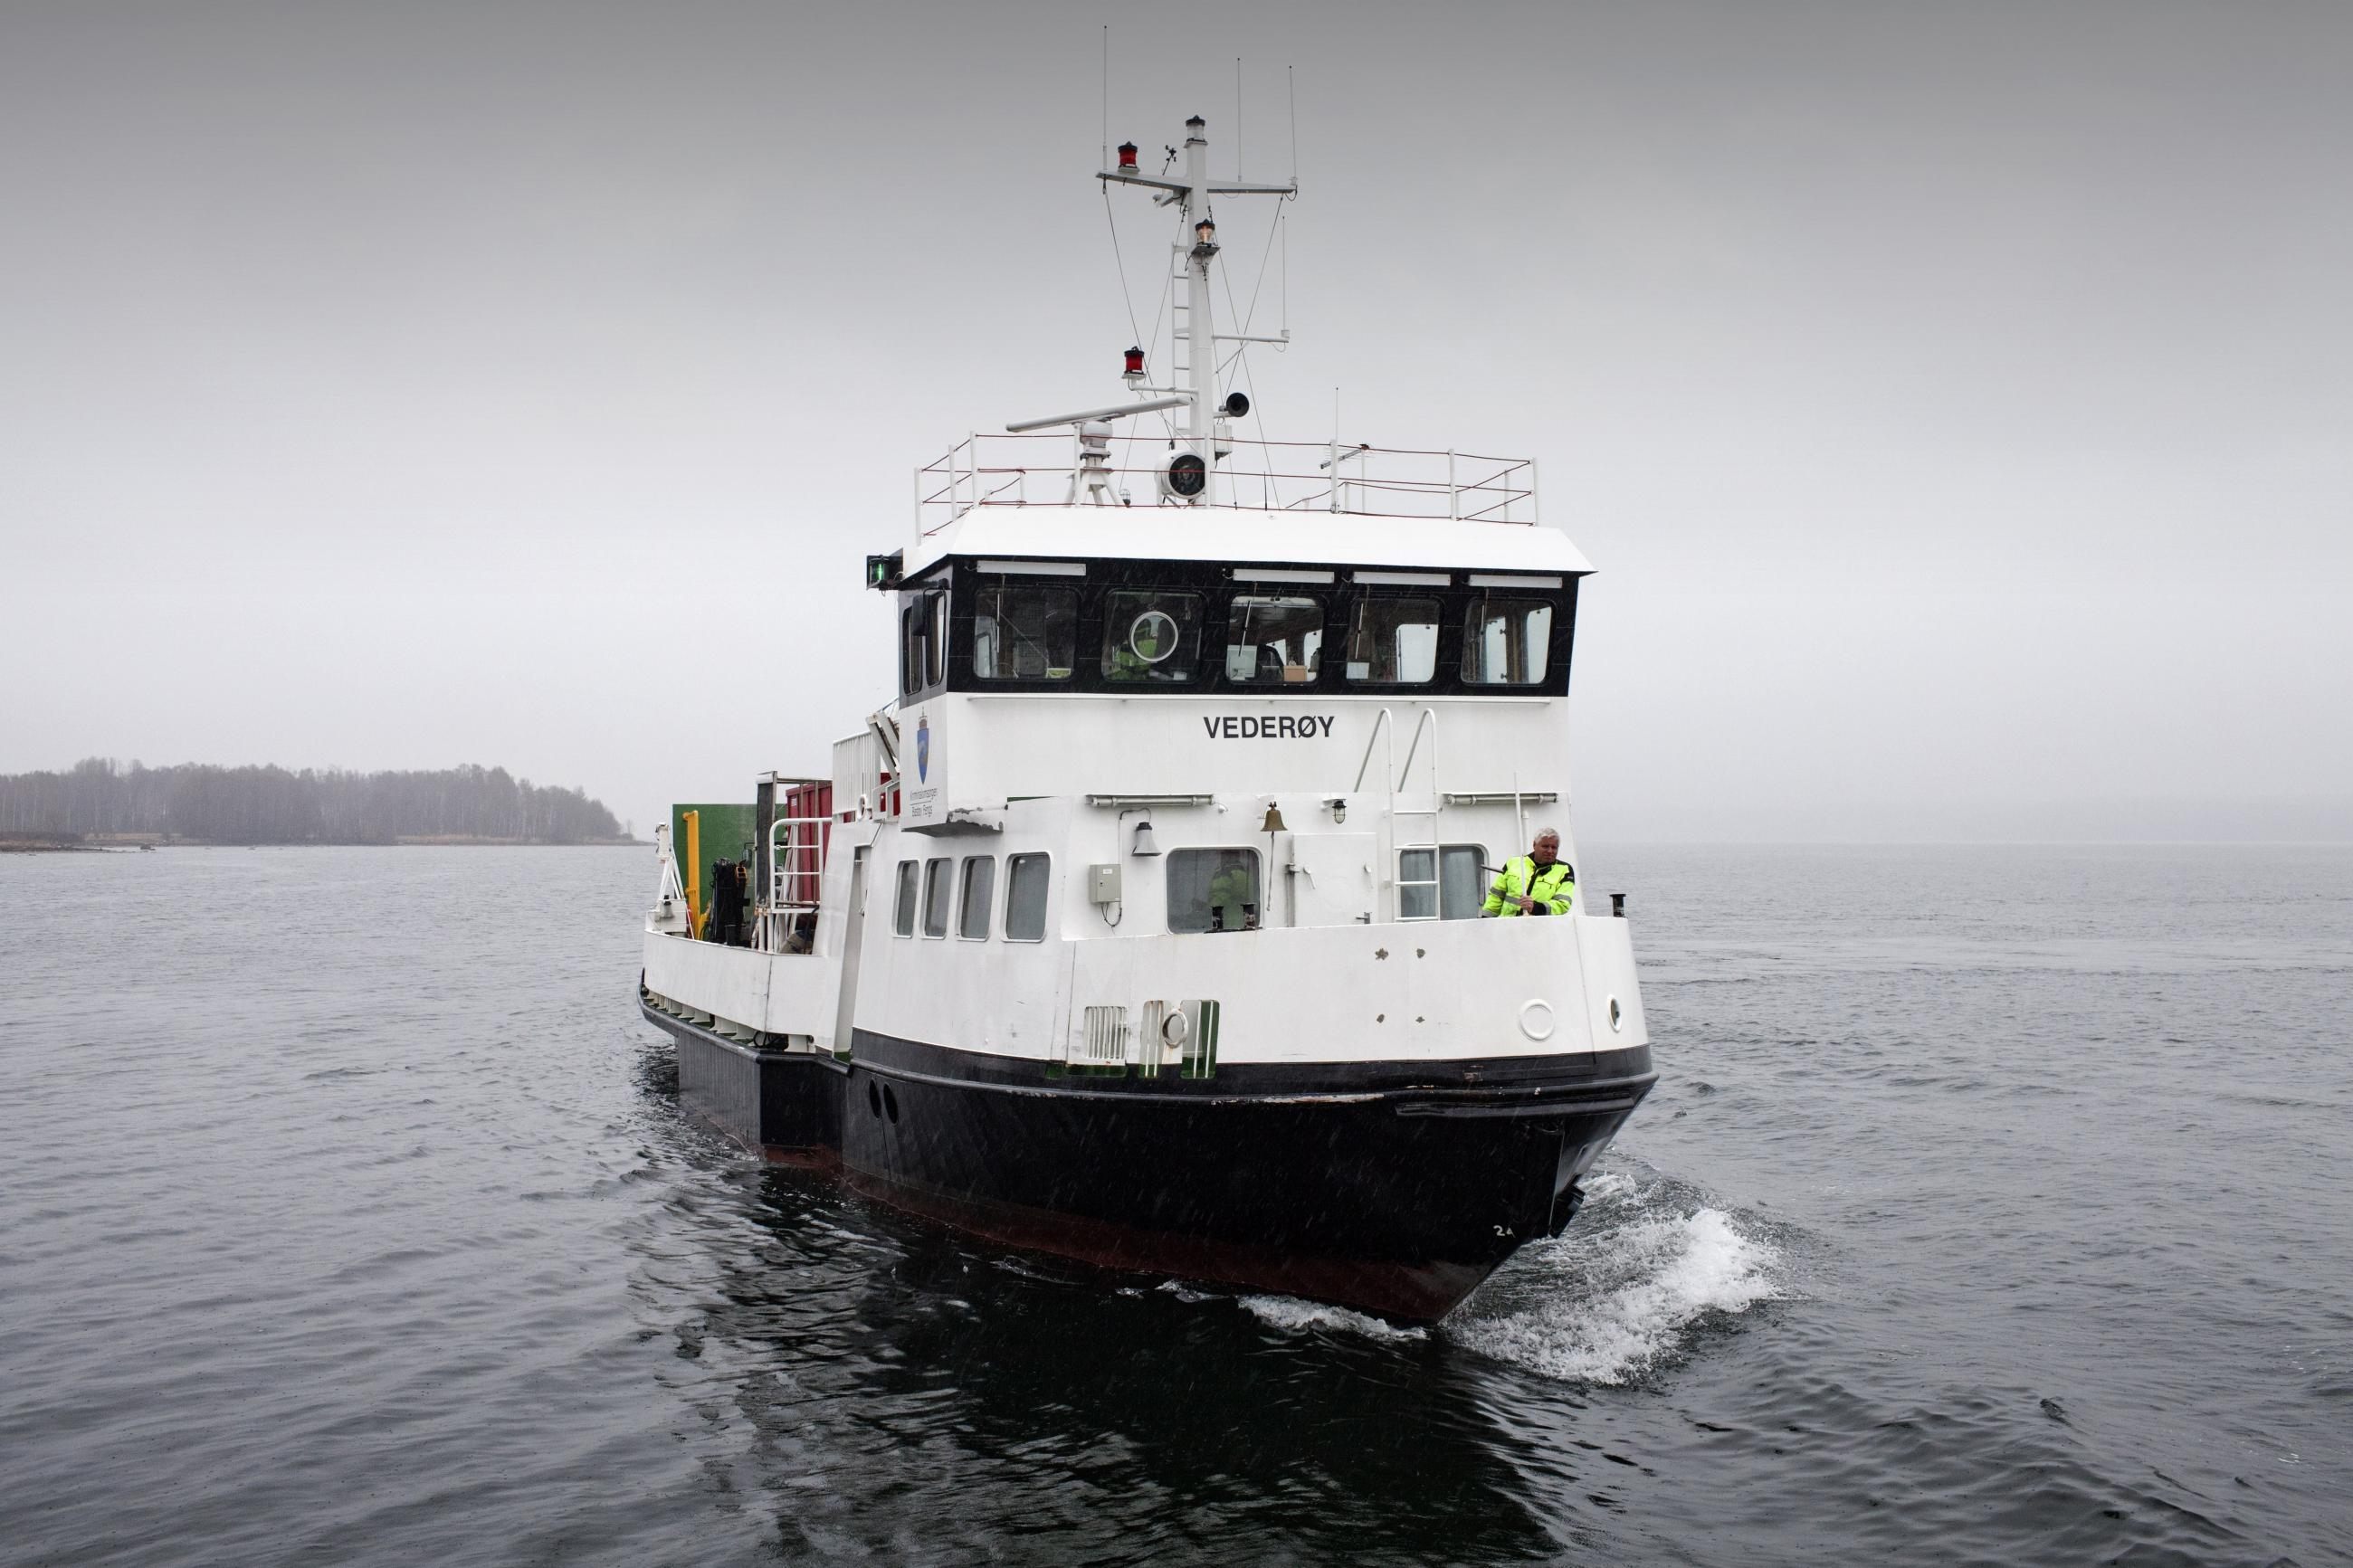 The ferry that travel from the mainland to Bastoy prison is seen as it approaches Bastøy Prison in Horten, Norway on April 12, 2011.